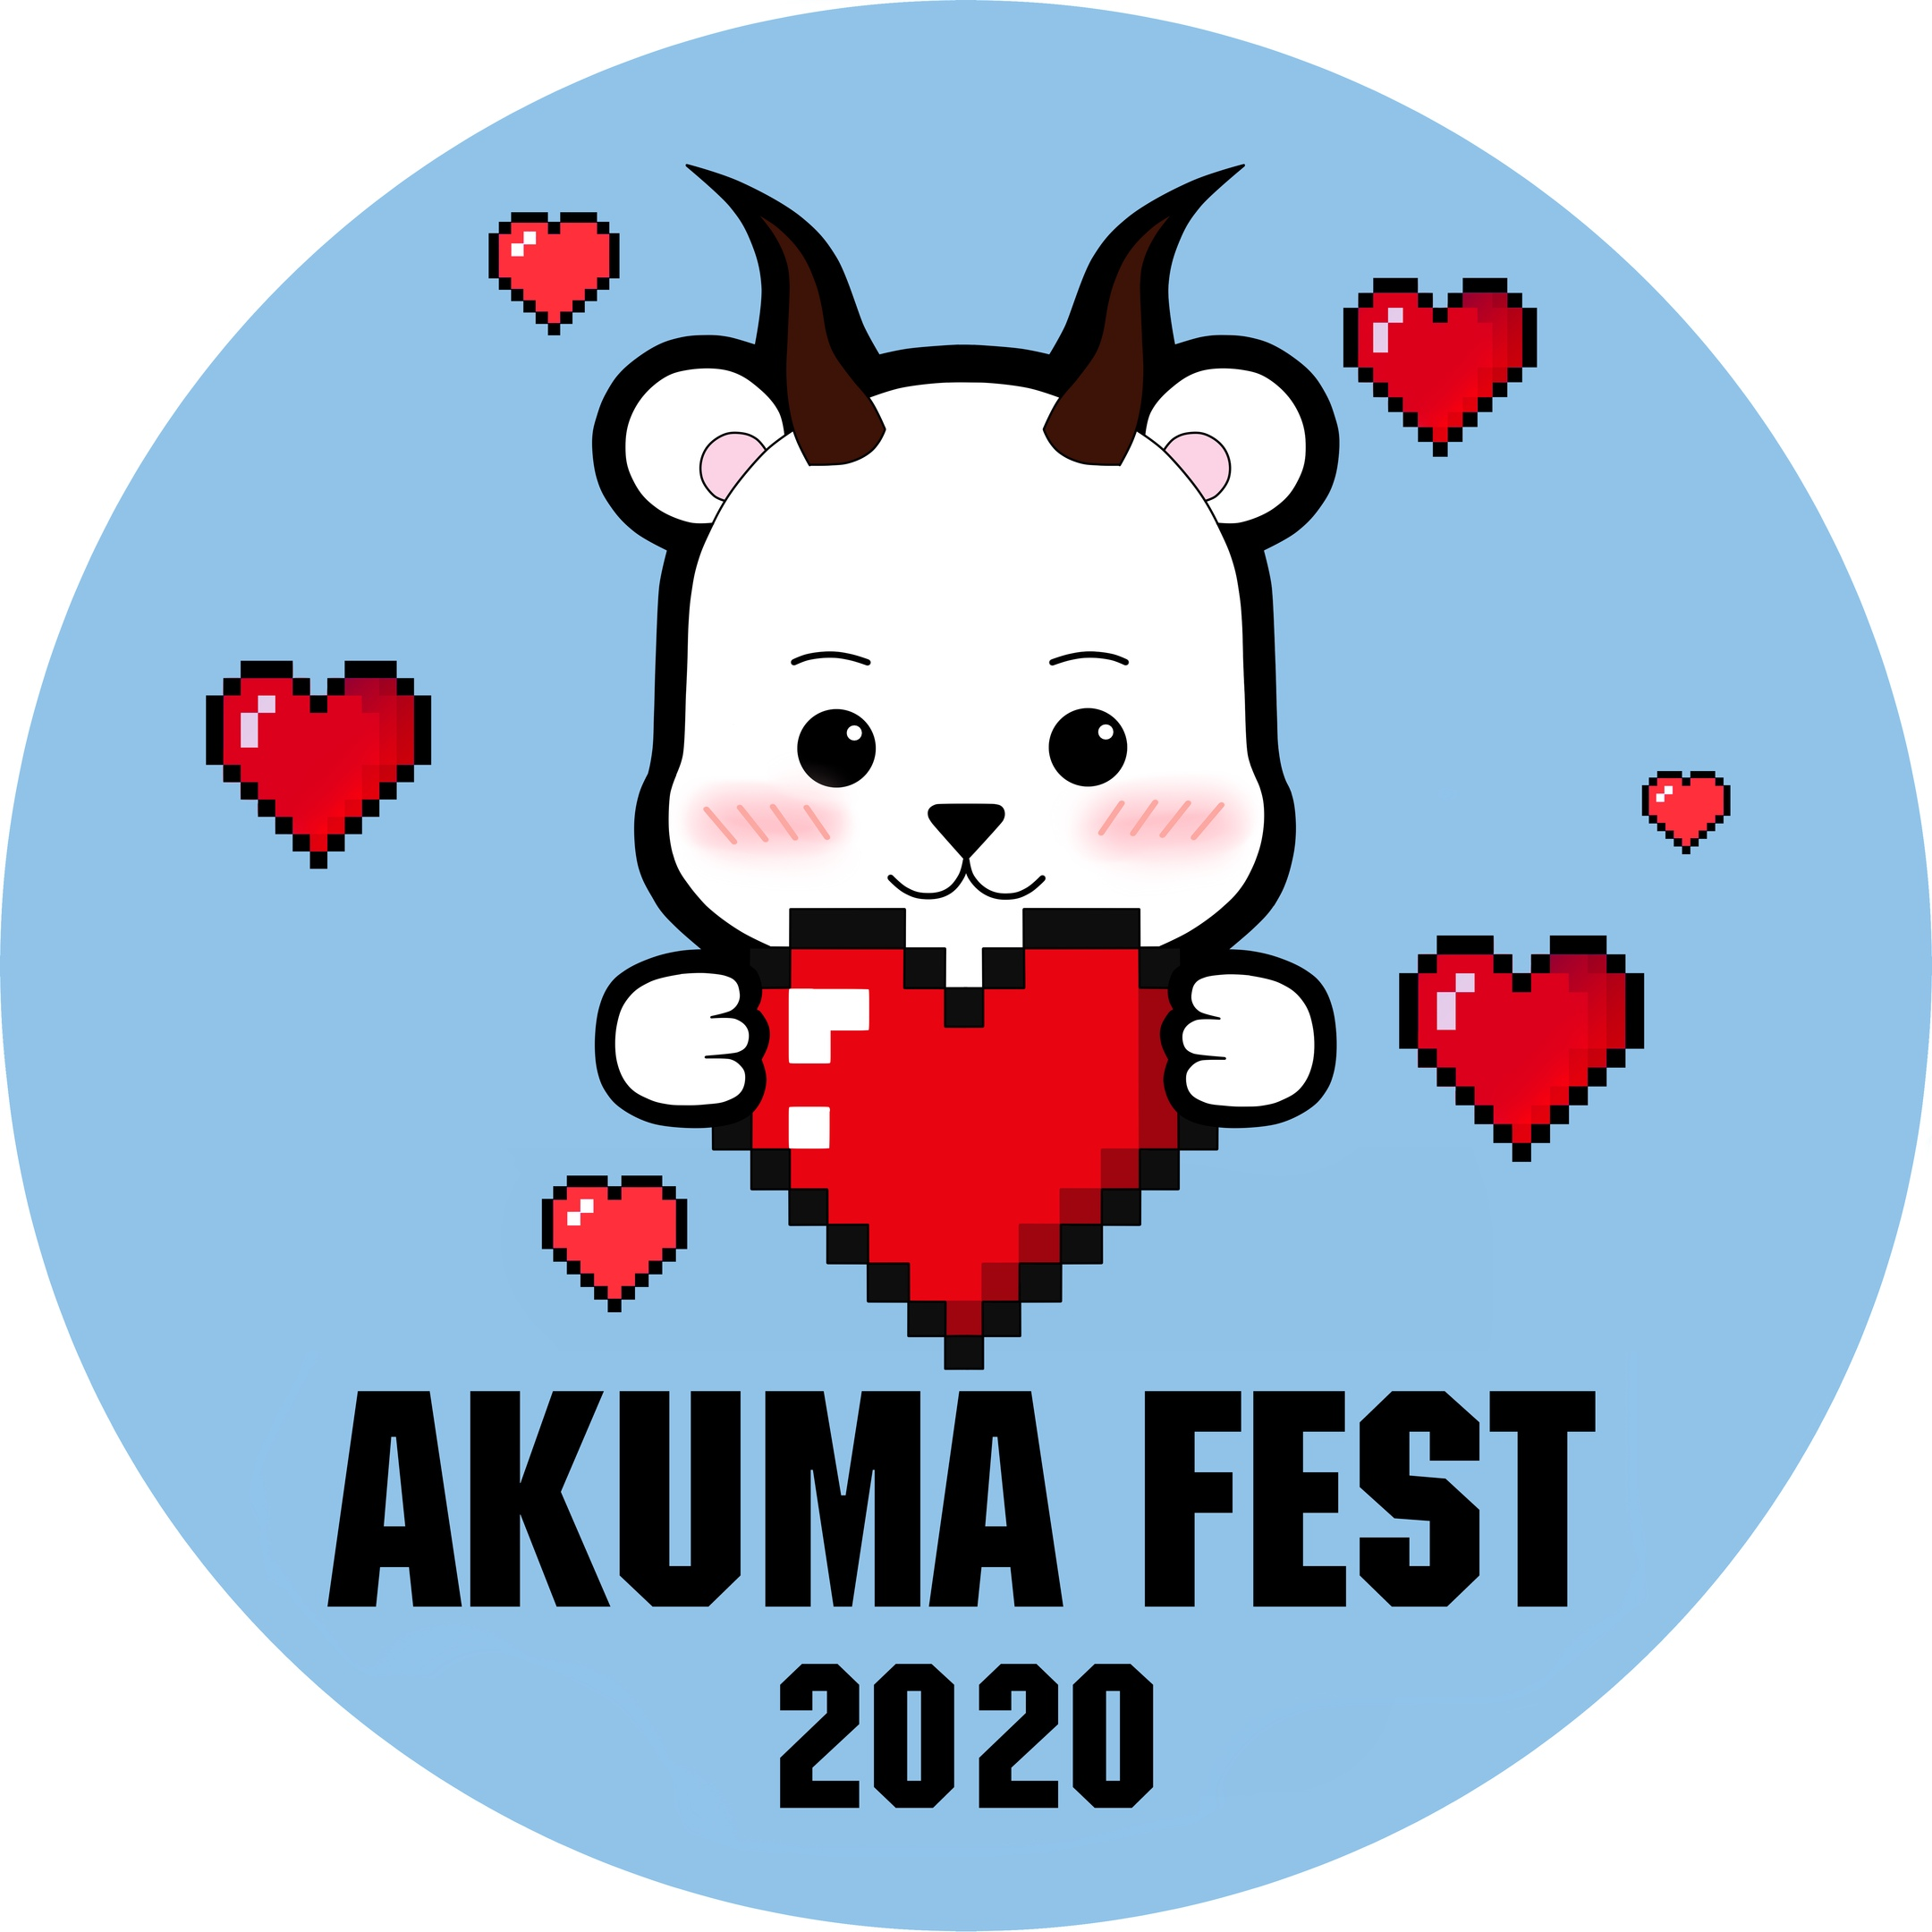 AKumaFest 2020 - Geek K-POP Anime фестиваль